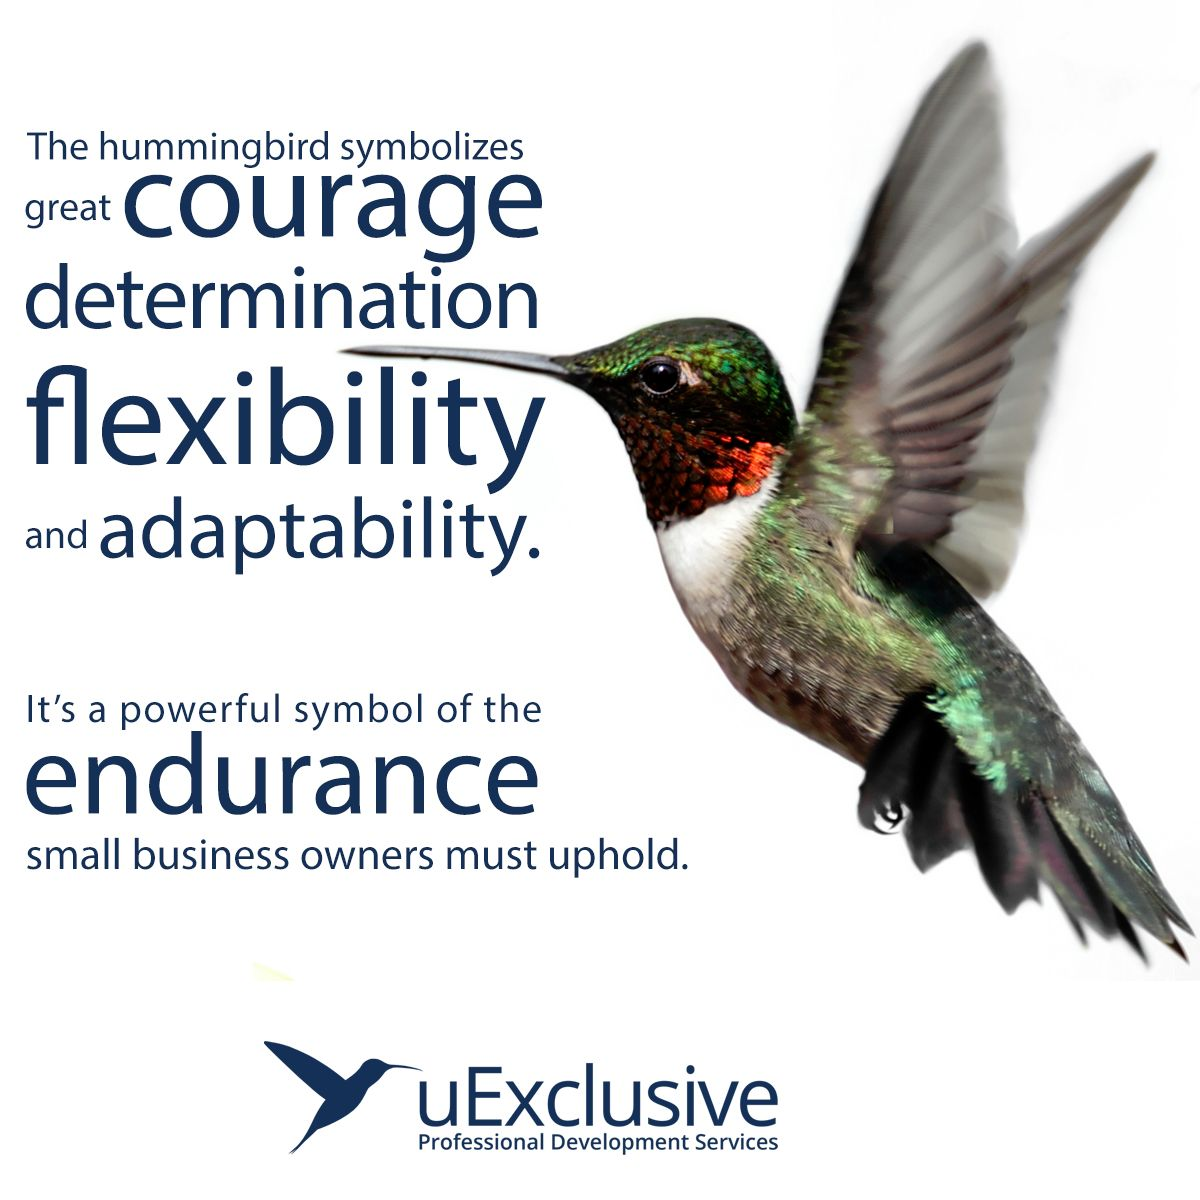 The Hummingbird Symbolizes Great Courage Determination Flexibility